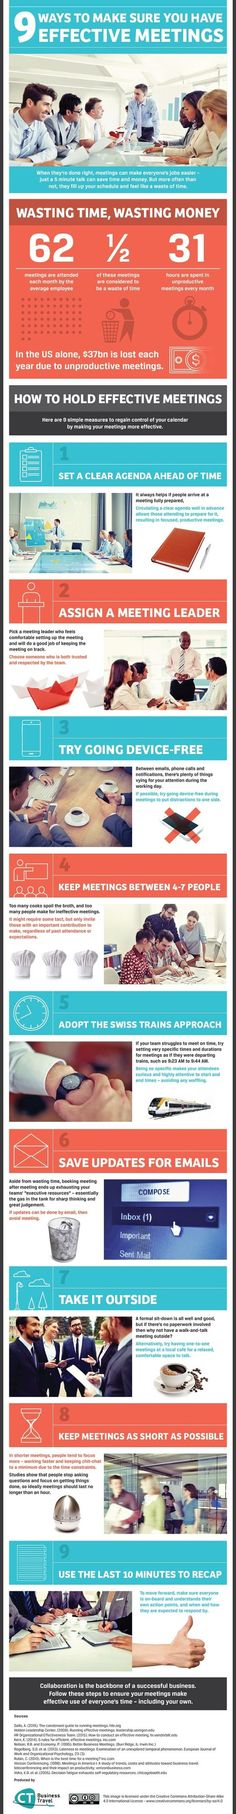 Tips For Running Effective Meetings Improve Meeting Management